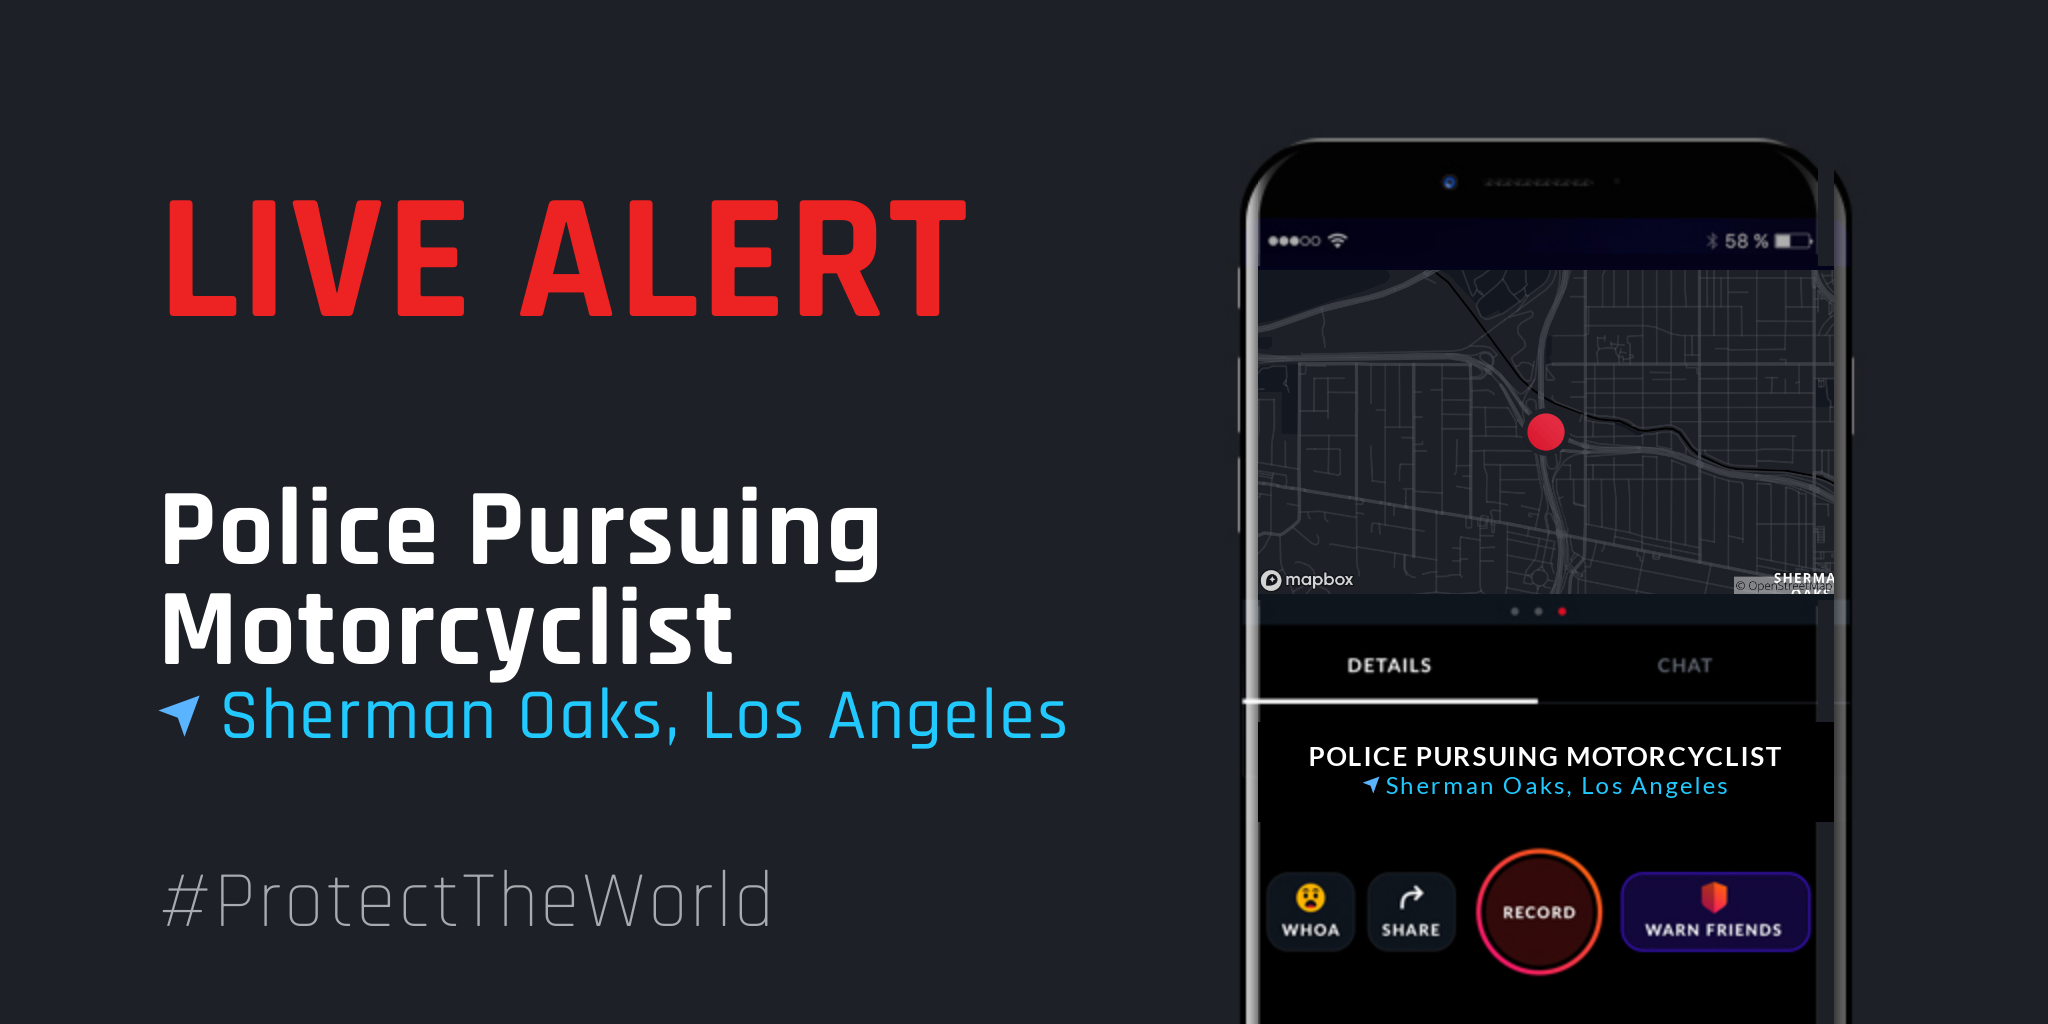 Motorcyclist Evaded Police Pursuit @Citizen | Instant 911 Crime And